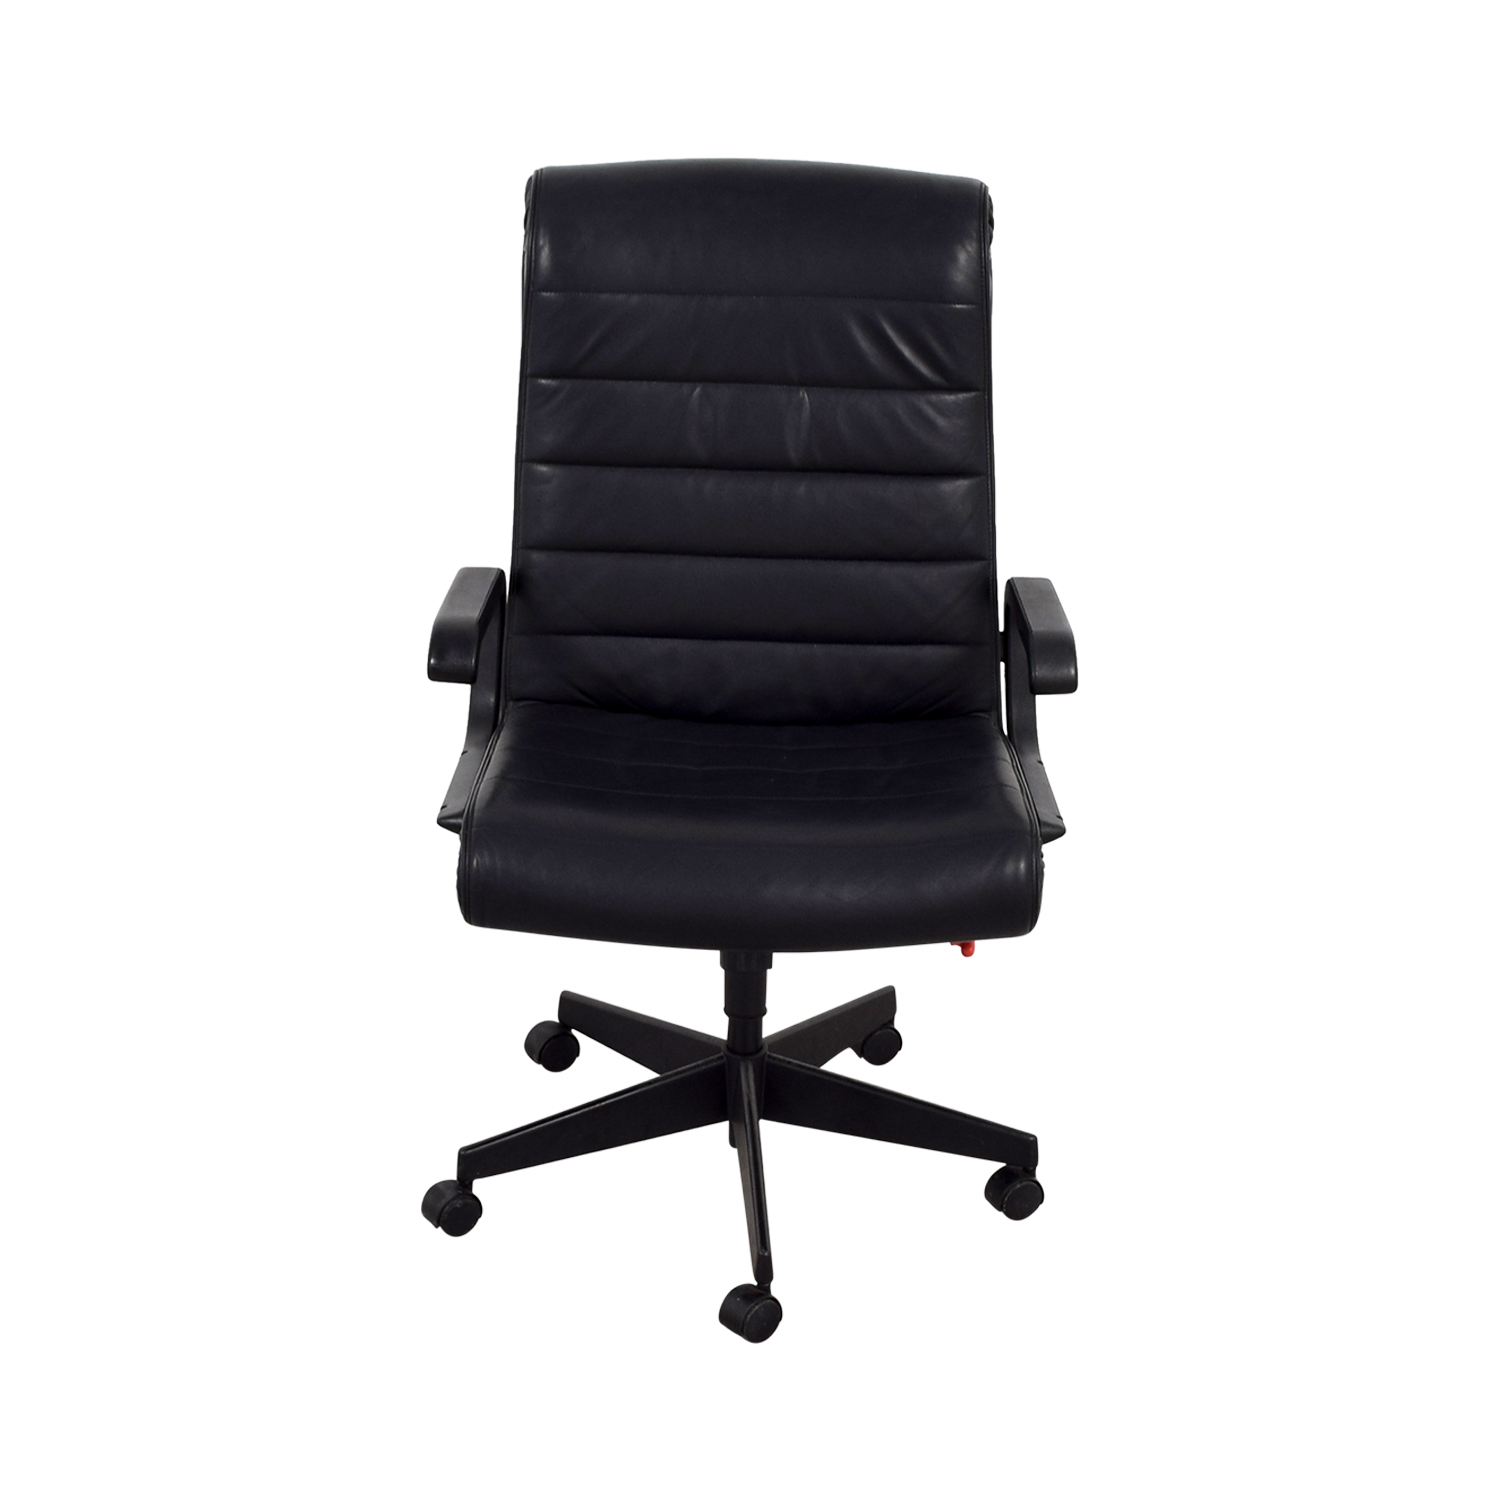 Black Leather fice Chairs Leather fice Chair Black Decorating